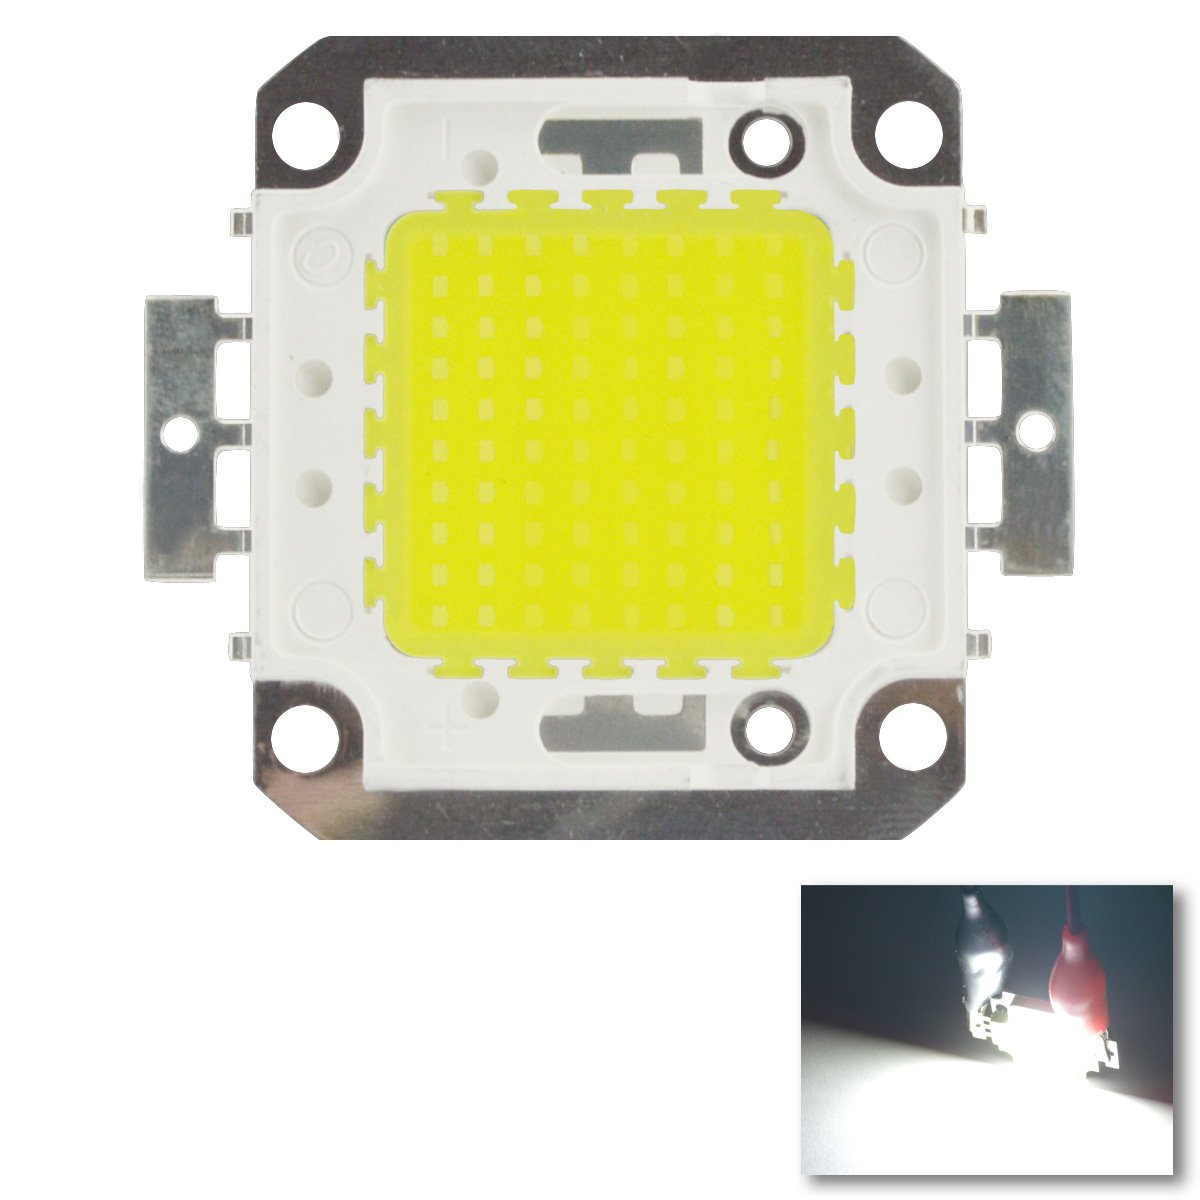 Lohas 100w Led Chip Cool White Bulb High Power Energy Saving Lamp Circuit 6 Additional Credit 1 Mill Devise A That Will Light Household Bulbs